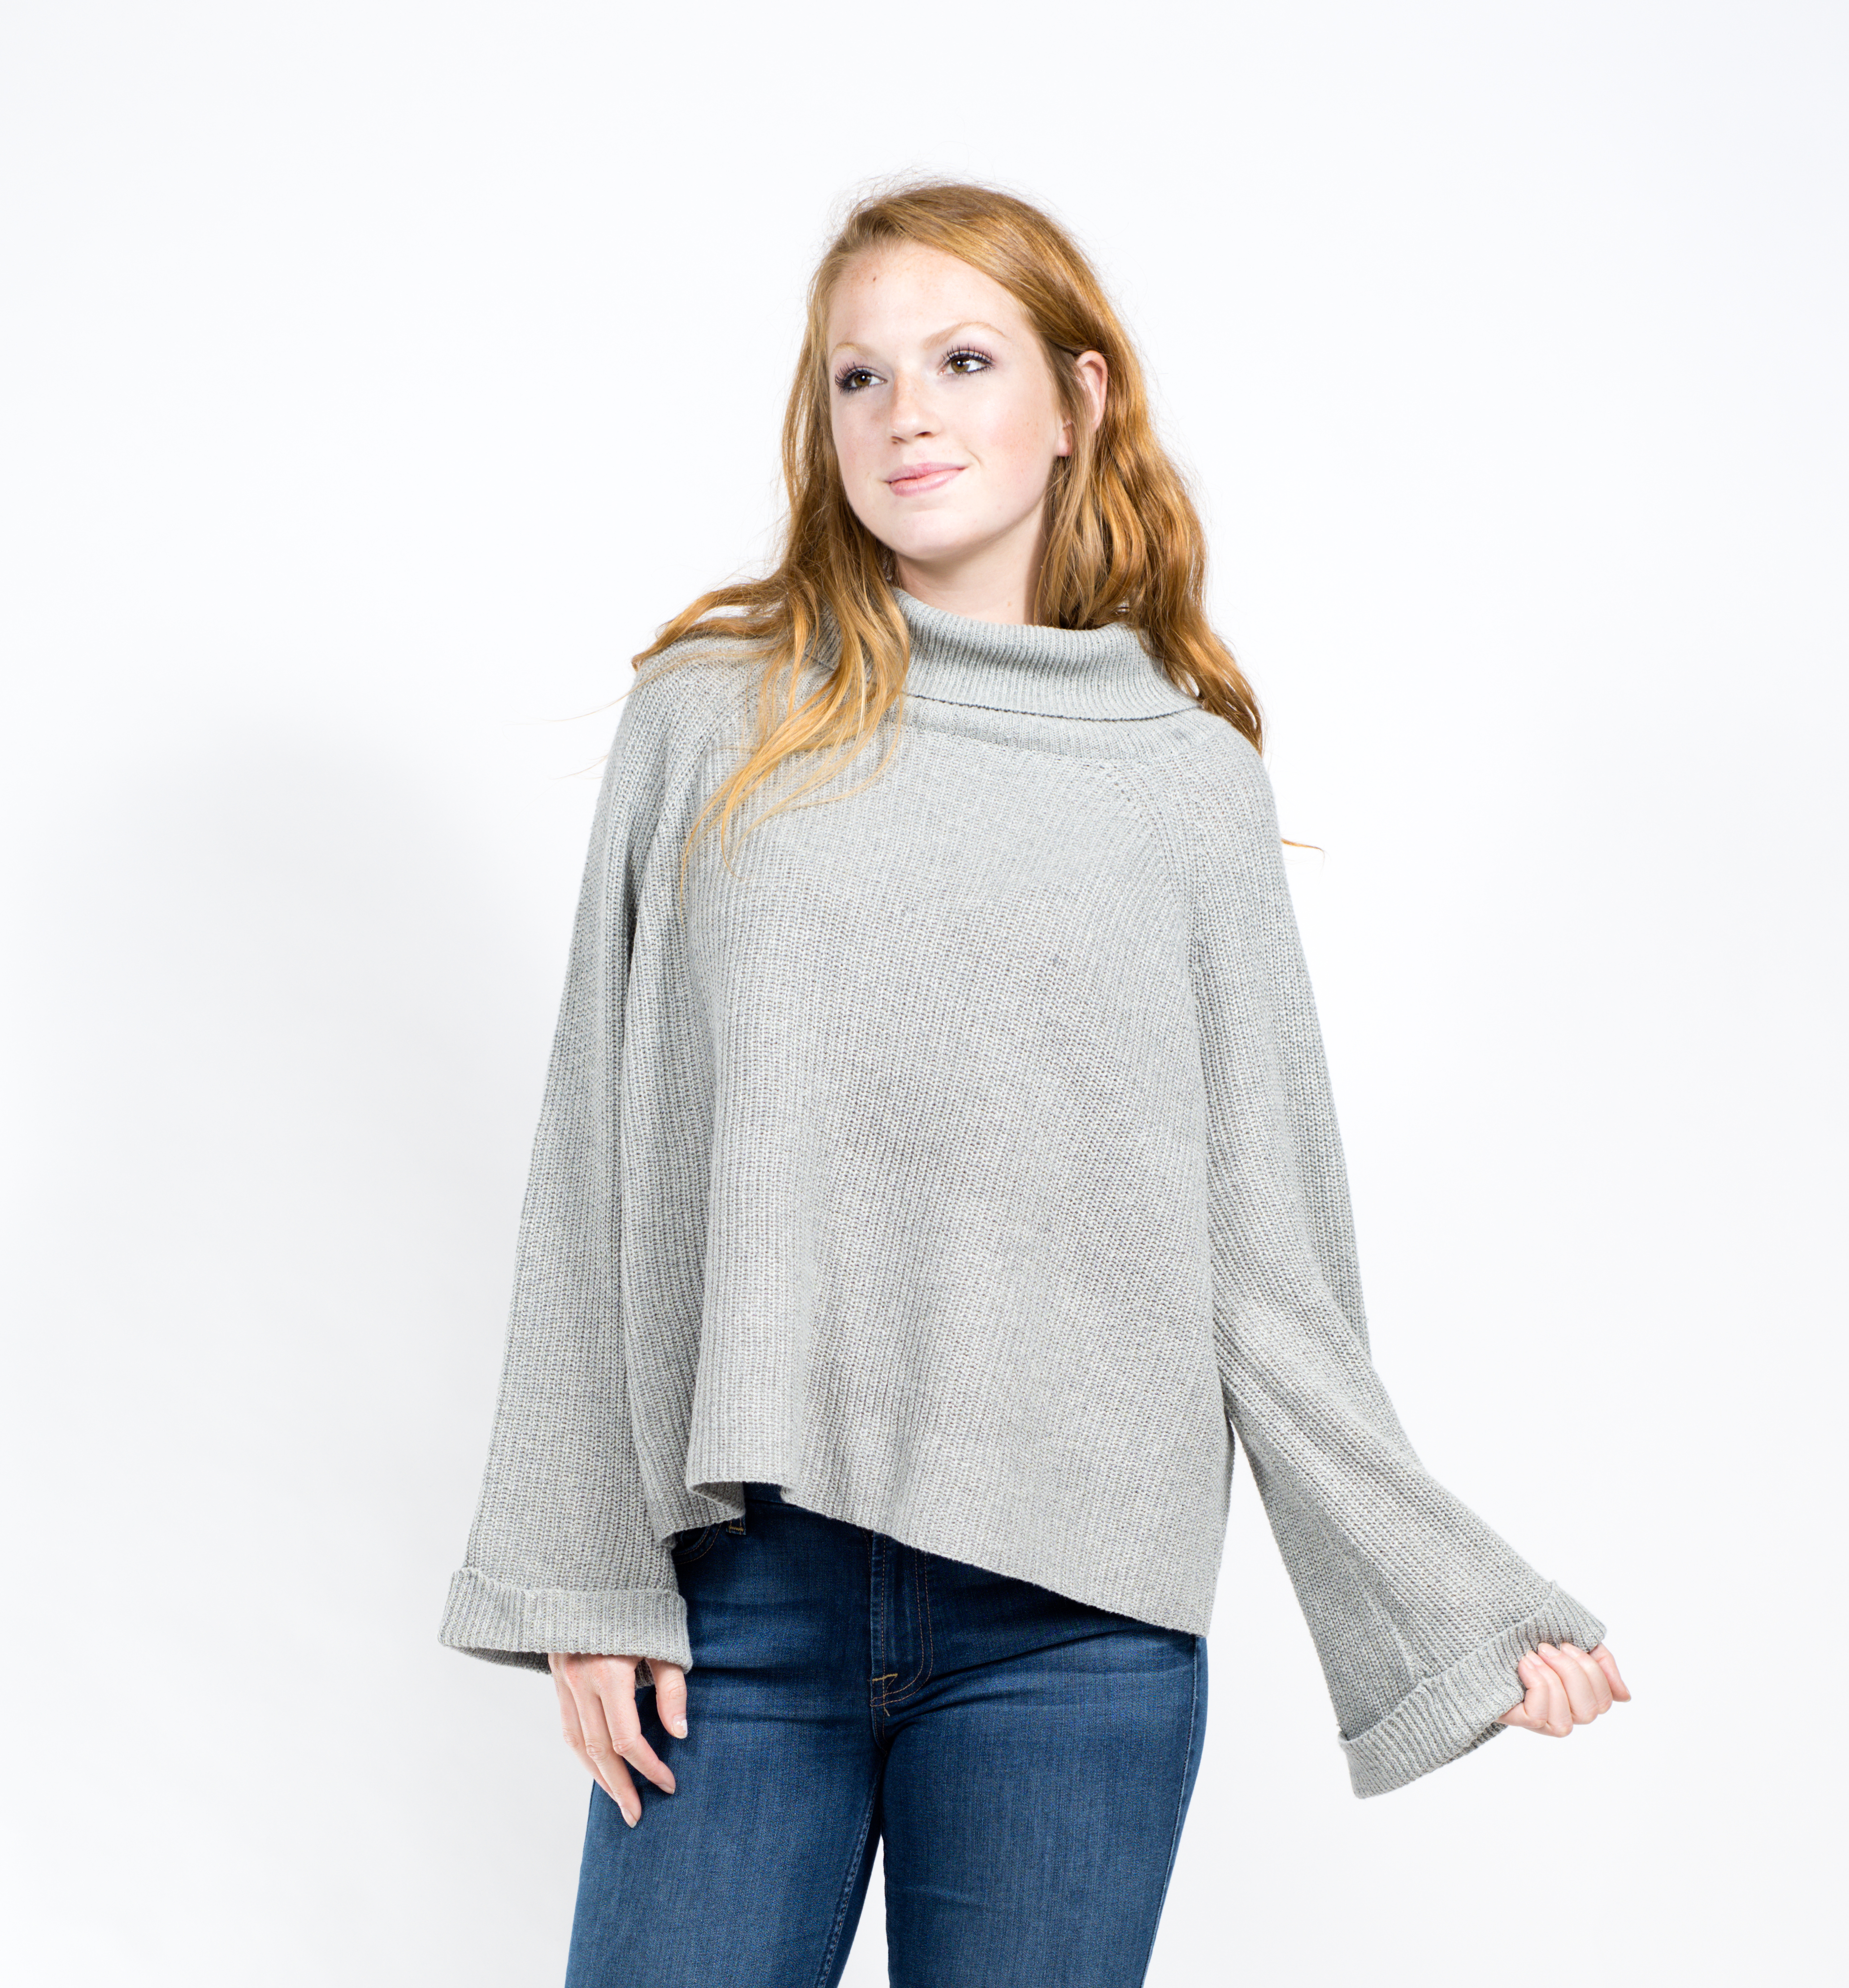 Flare sleeve cowl neck sweater | StyleDwell